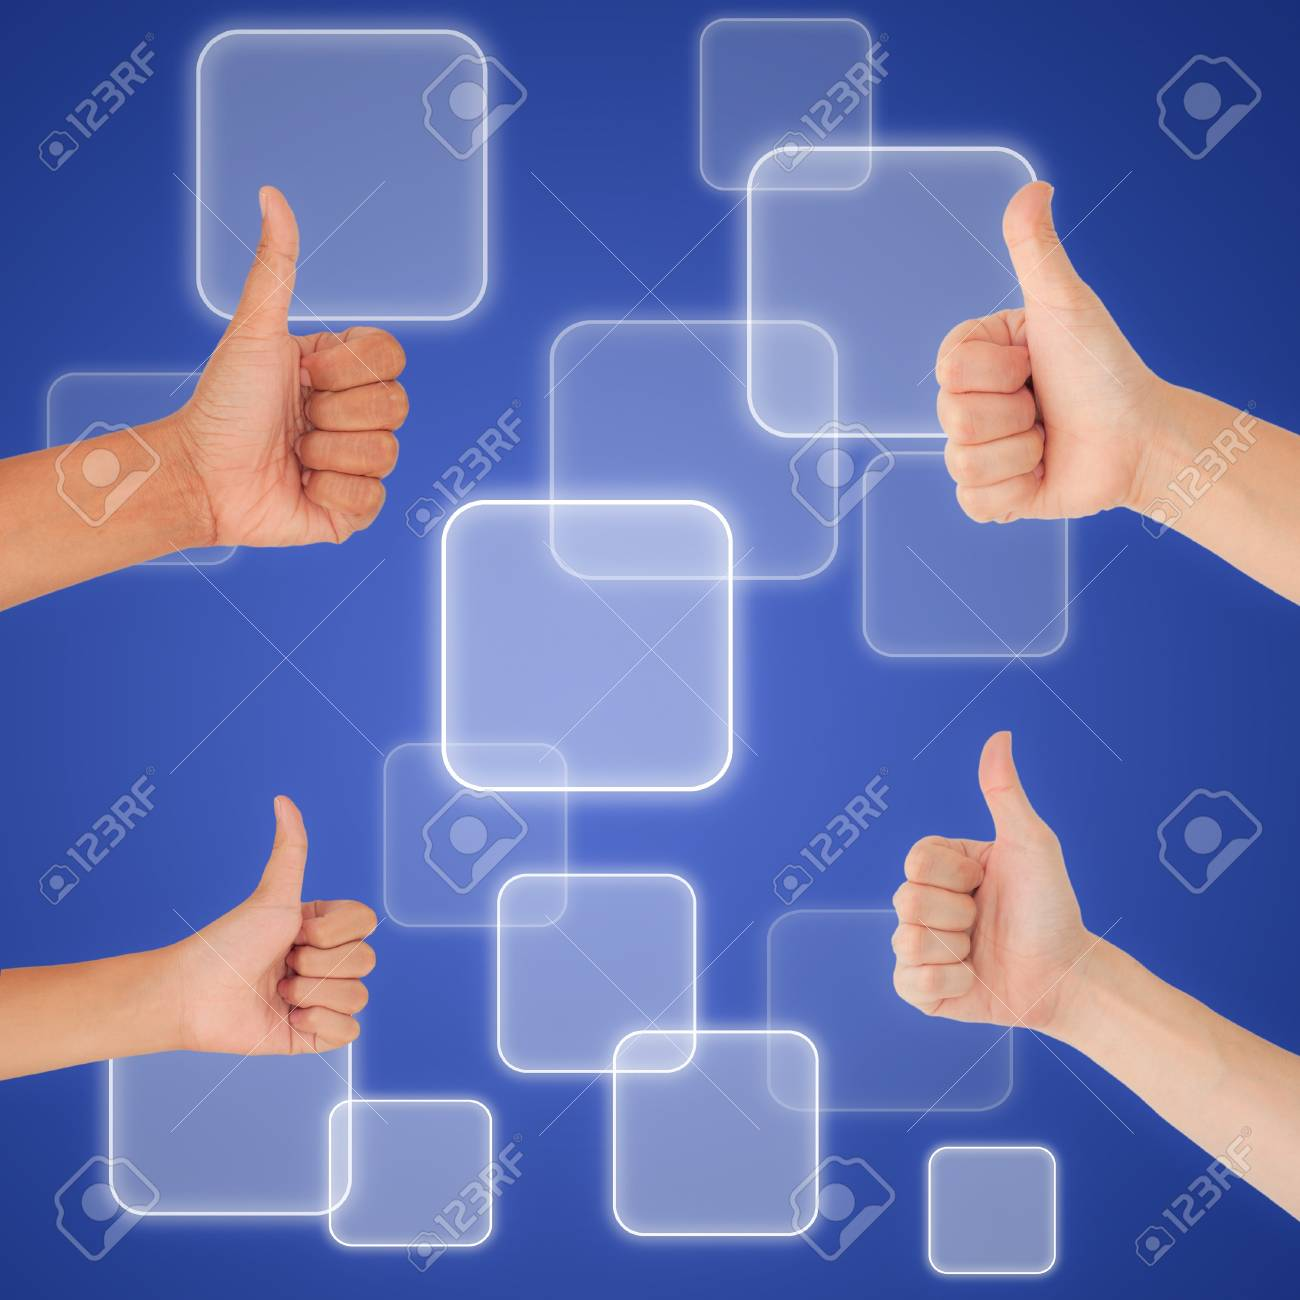 thumbs up on digital button background, like concept Stock Photo - 18513041